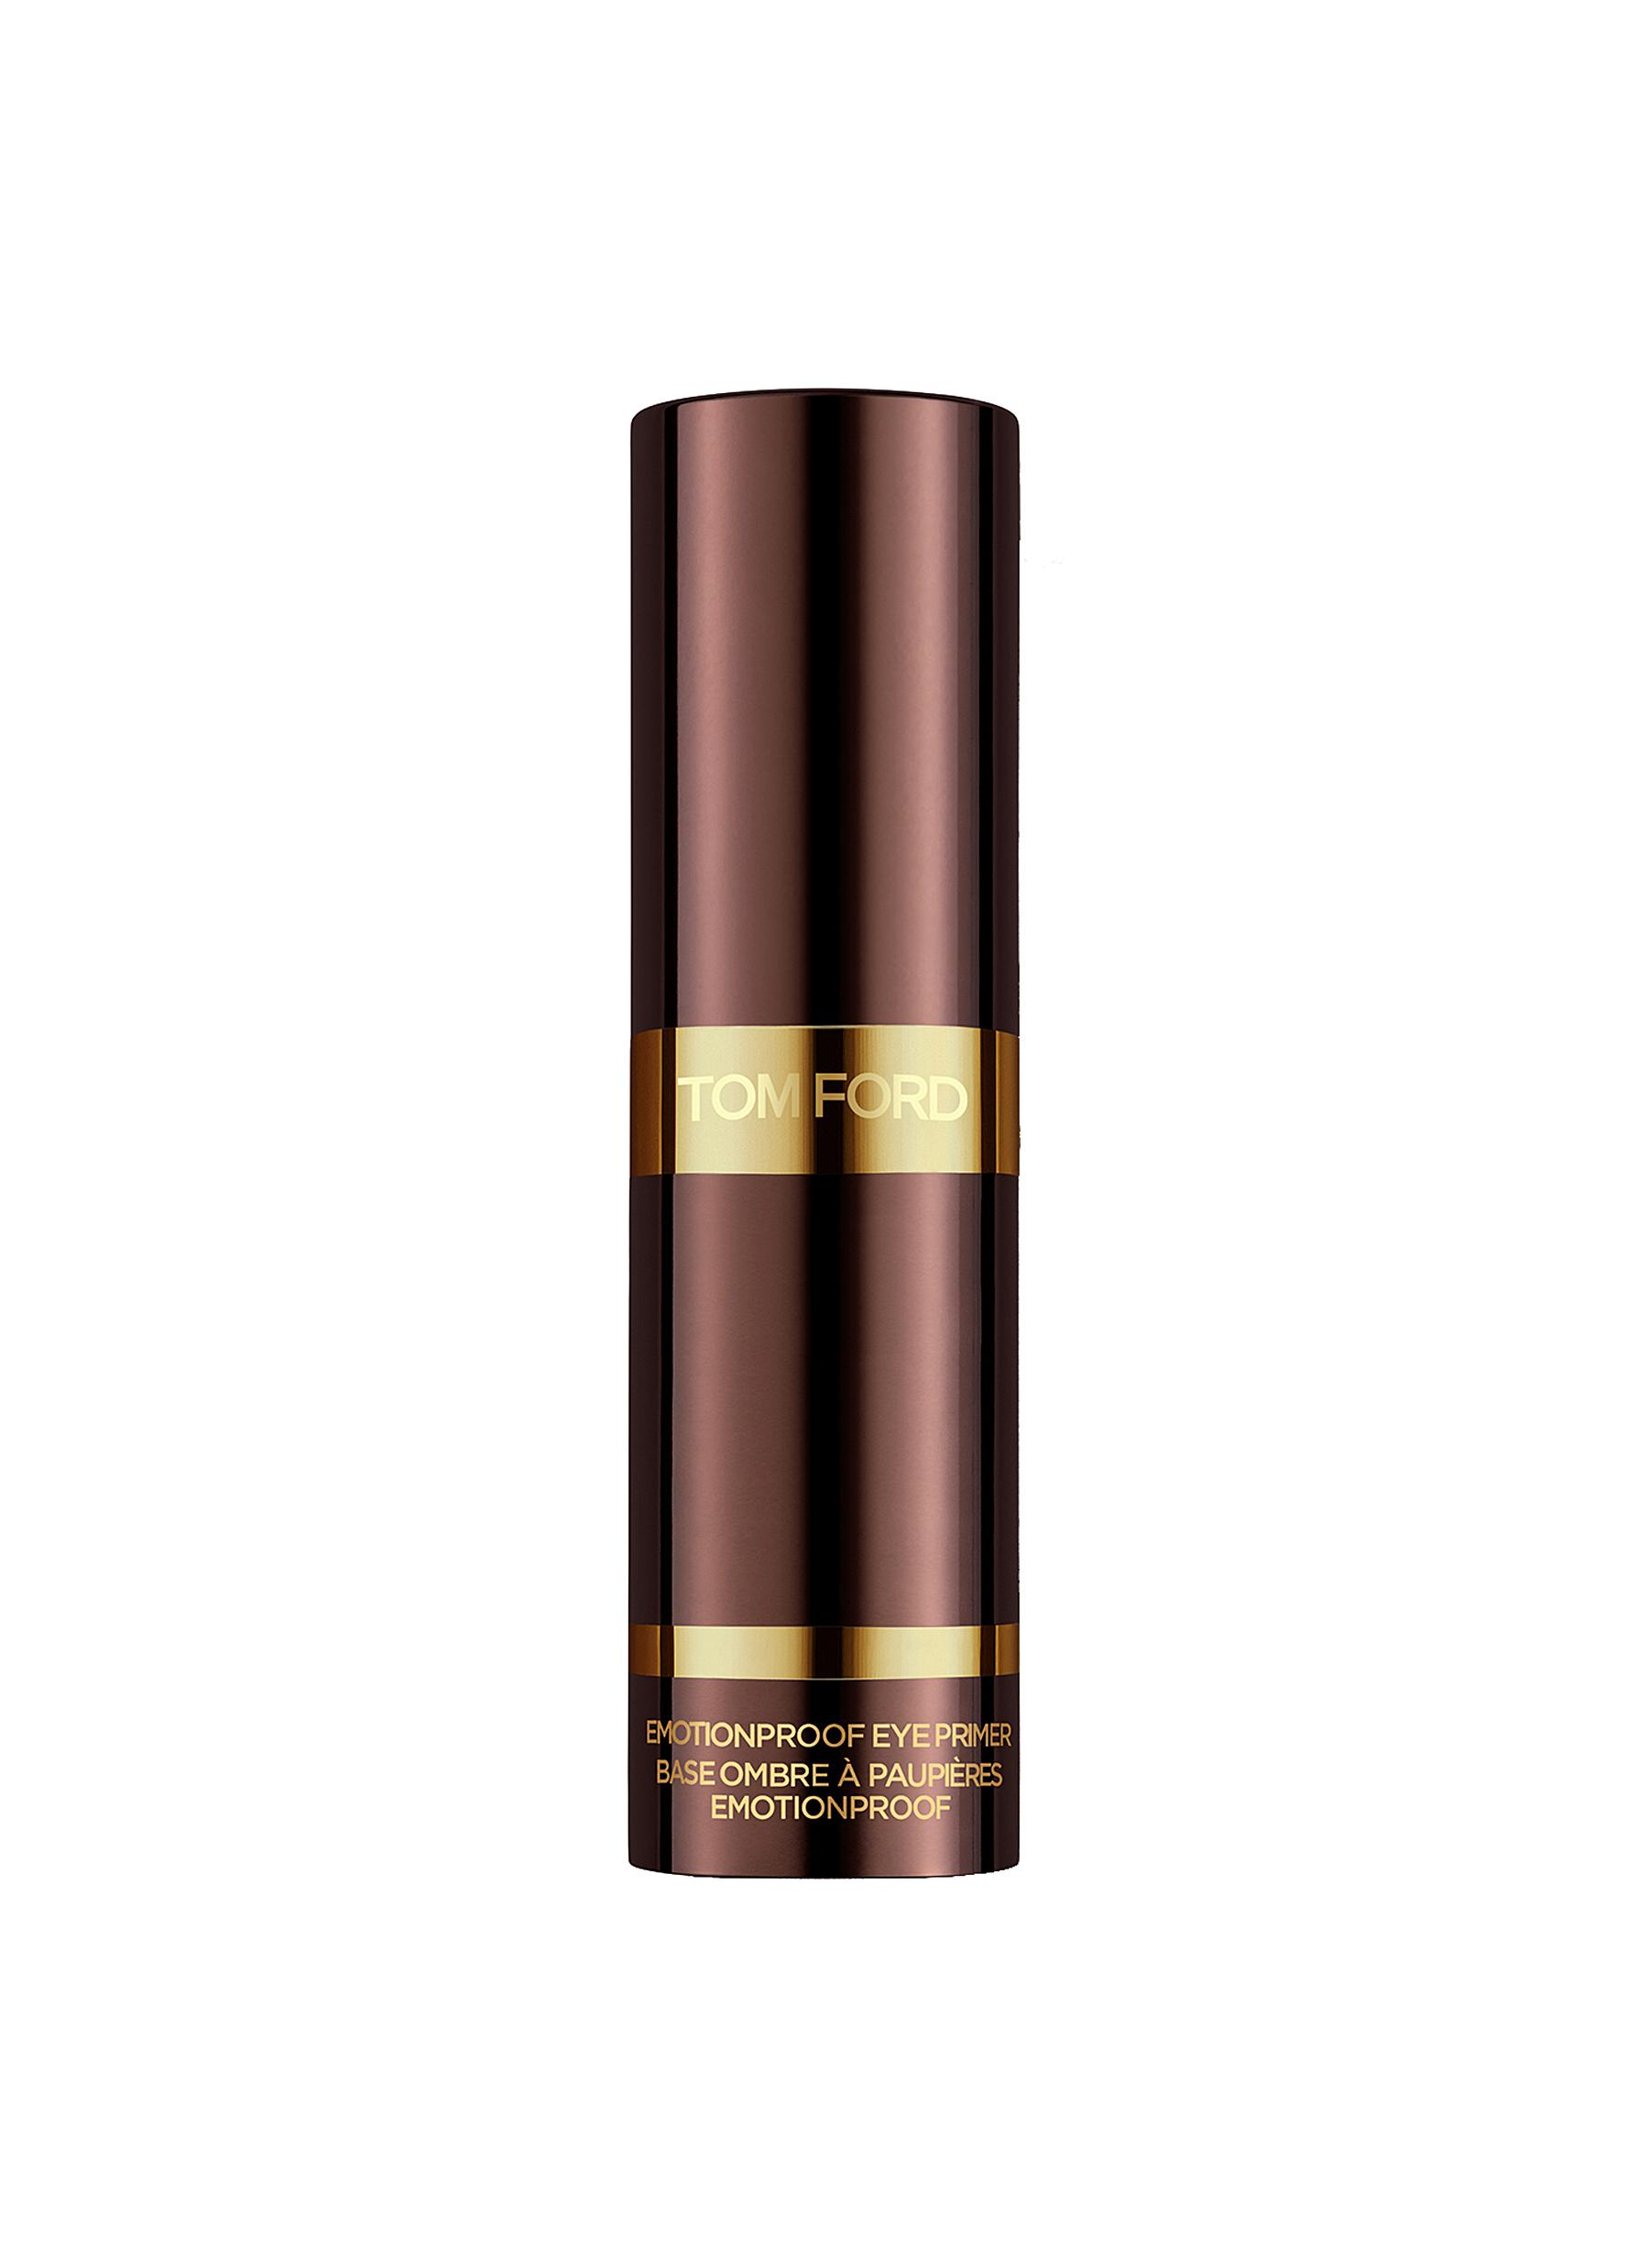 Tom Ford Emotionproof Eye Primer